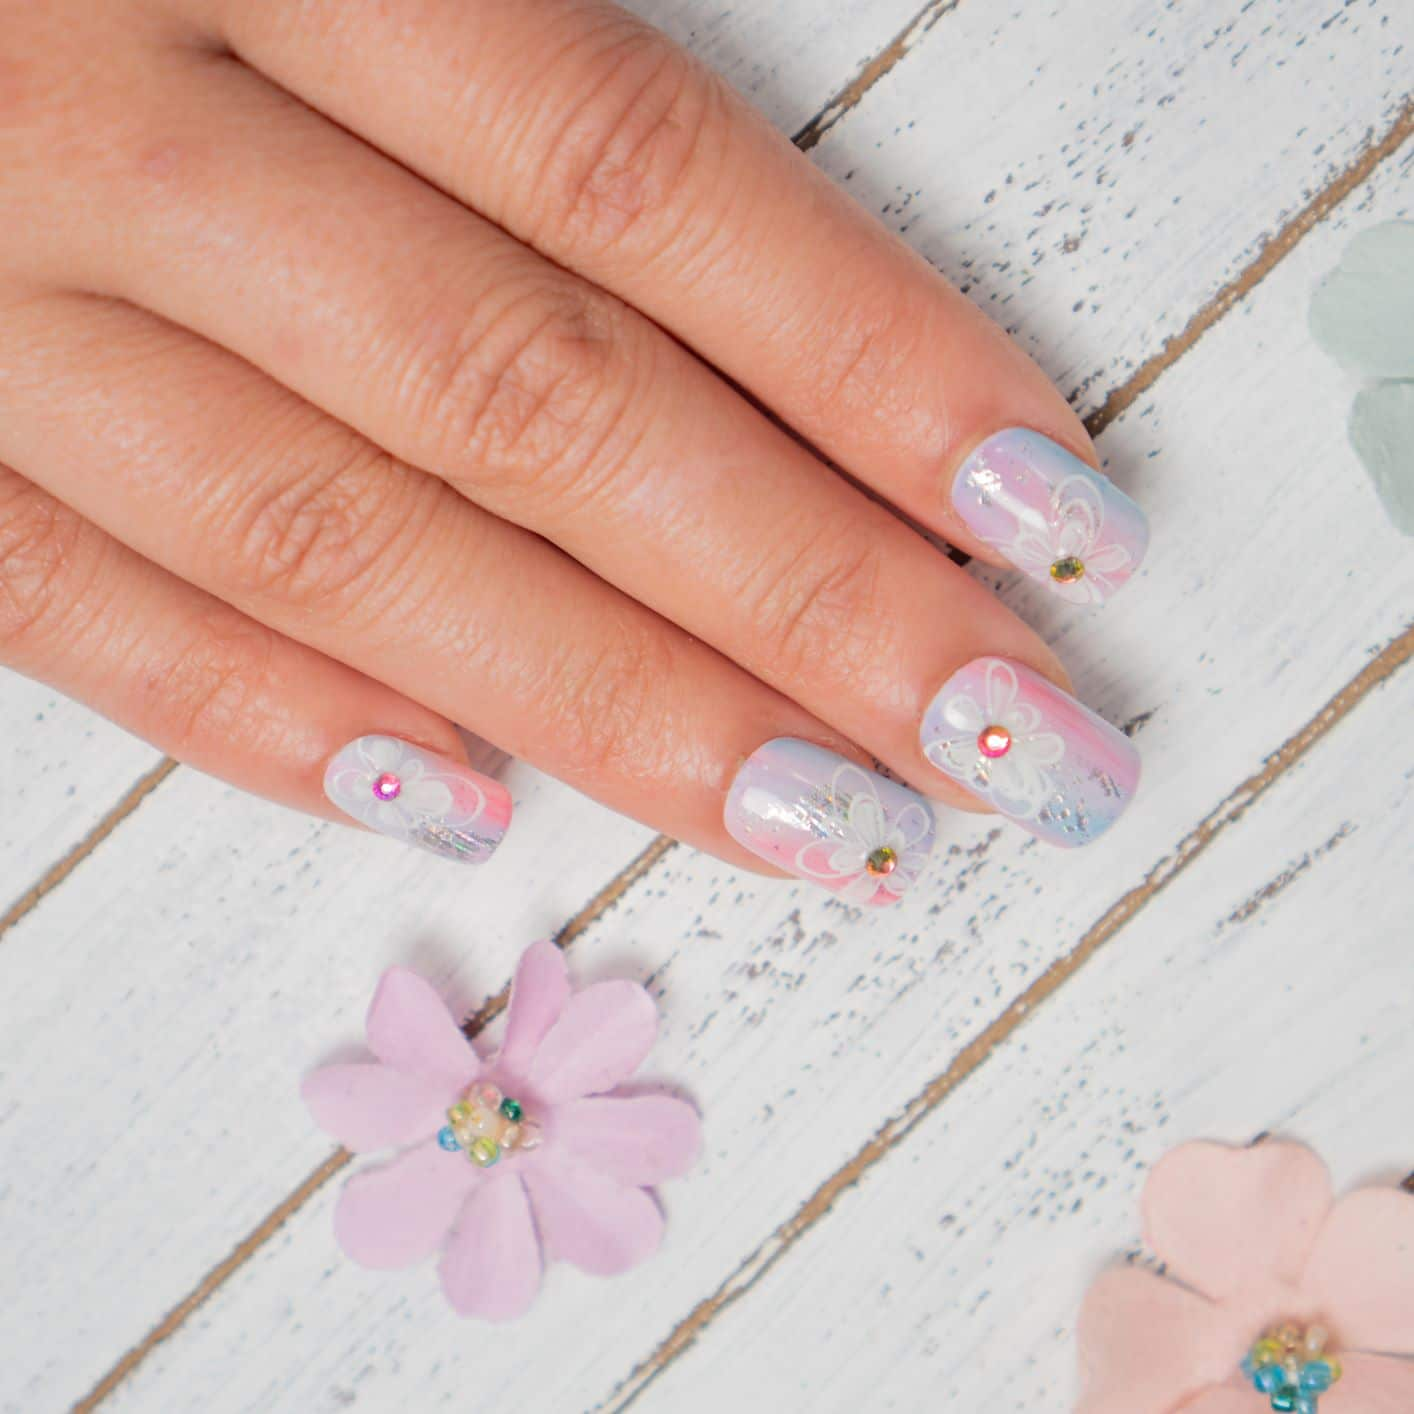 close up of hand with soft colored nails, with flower designs